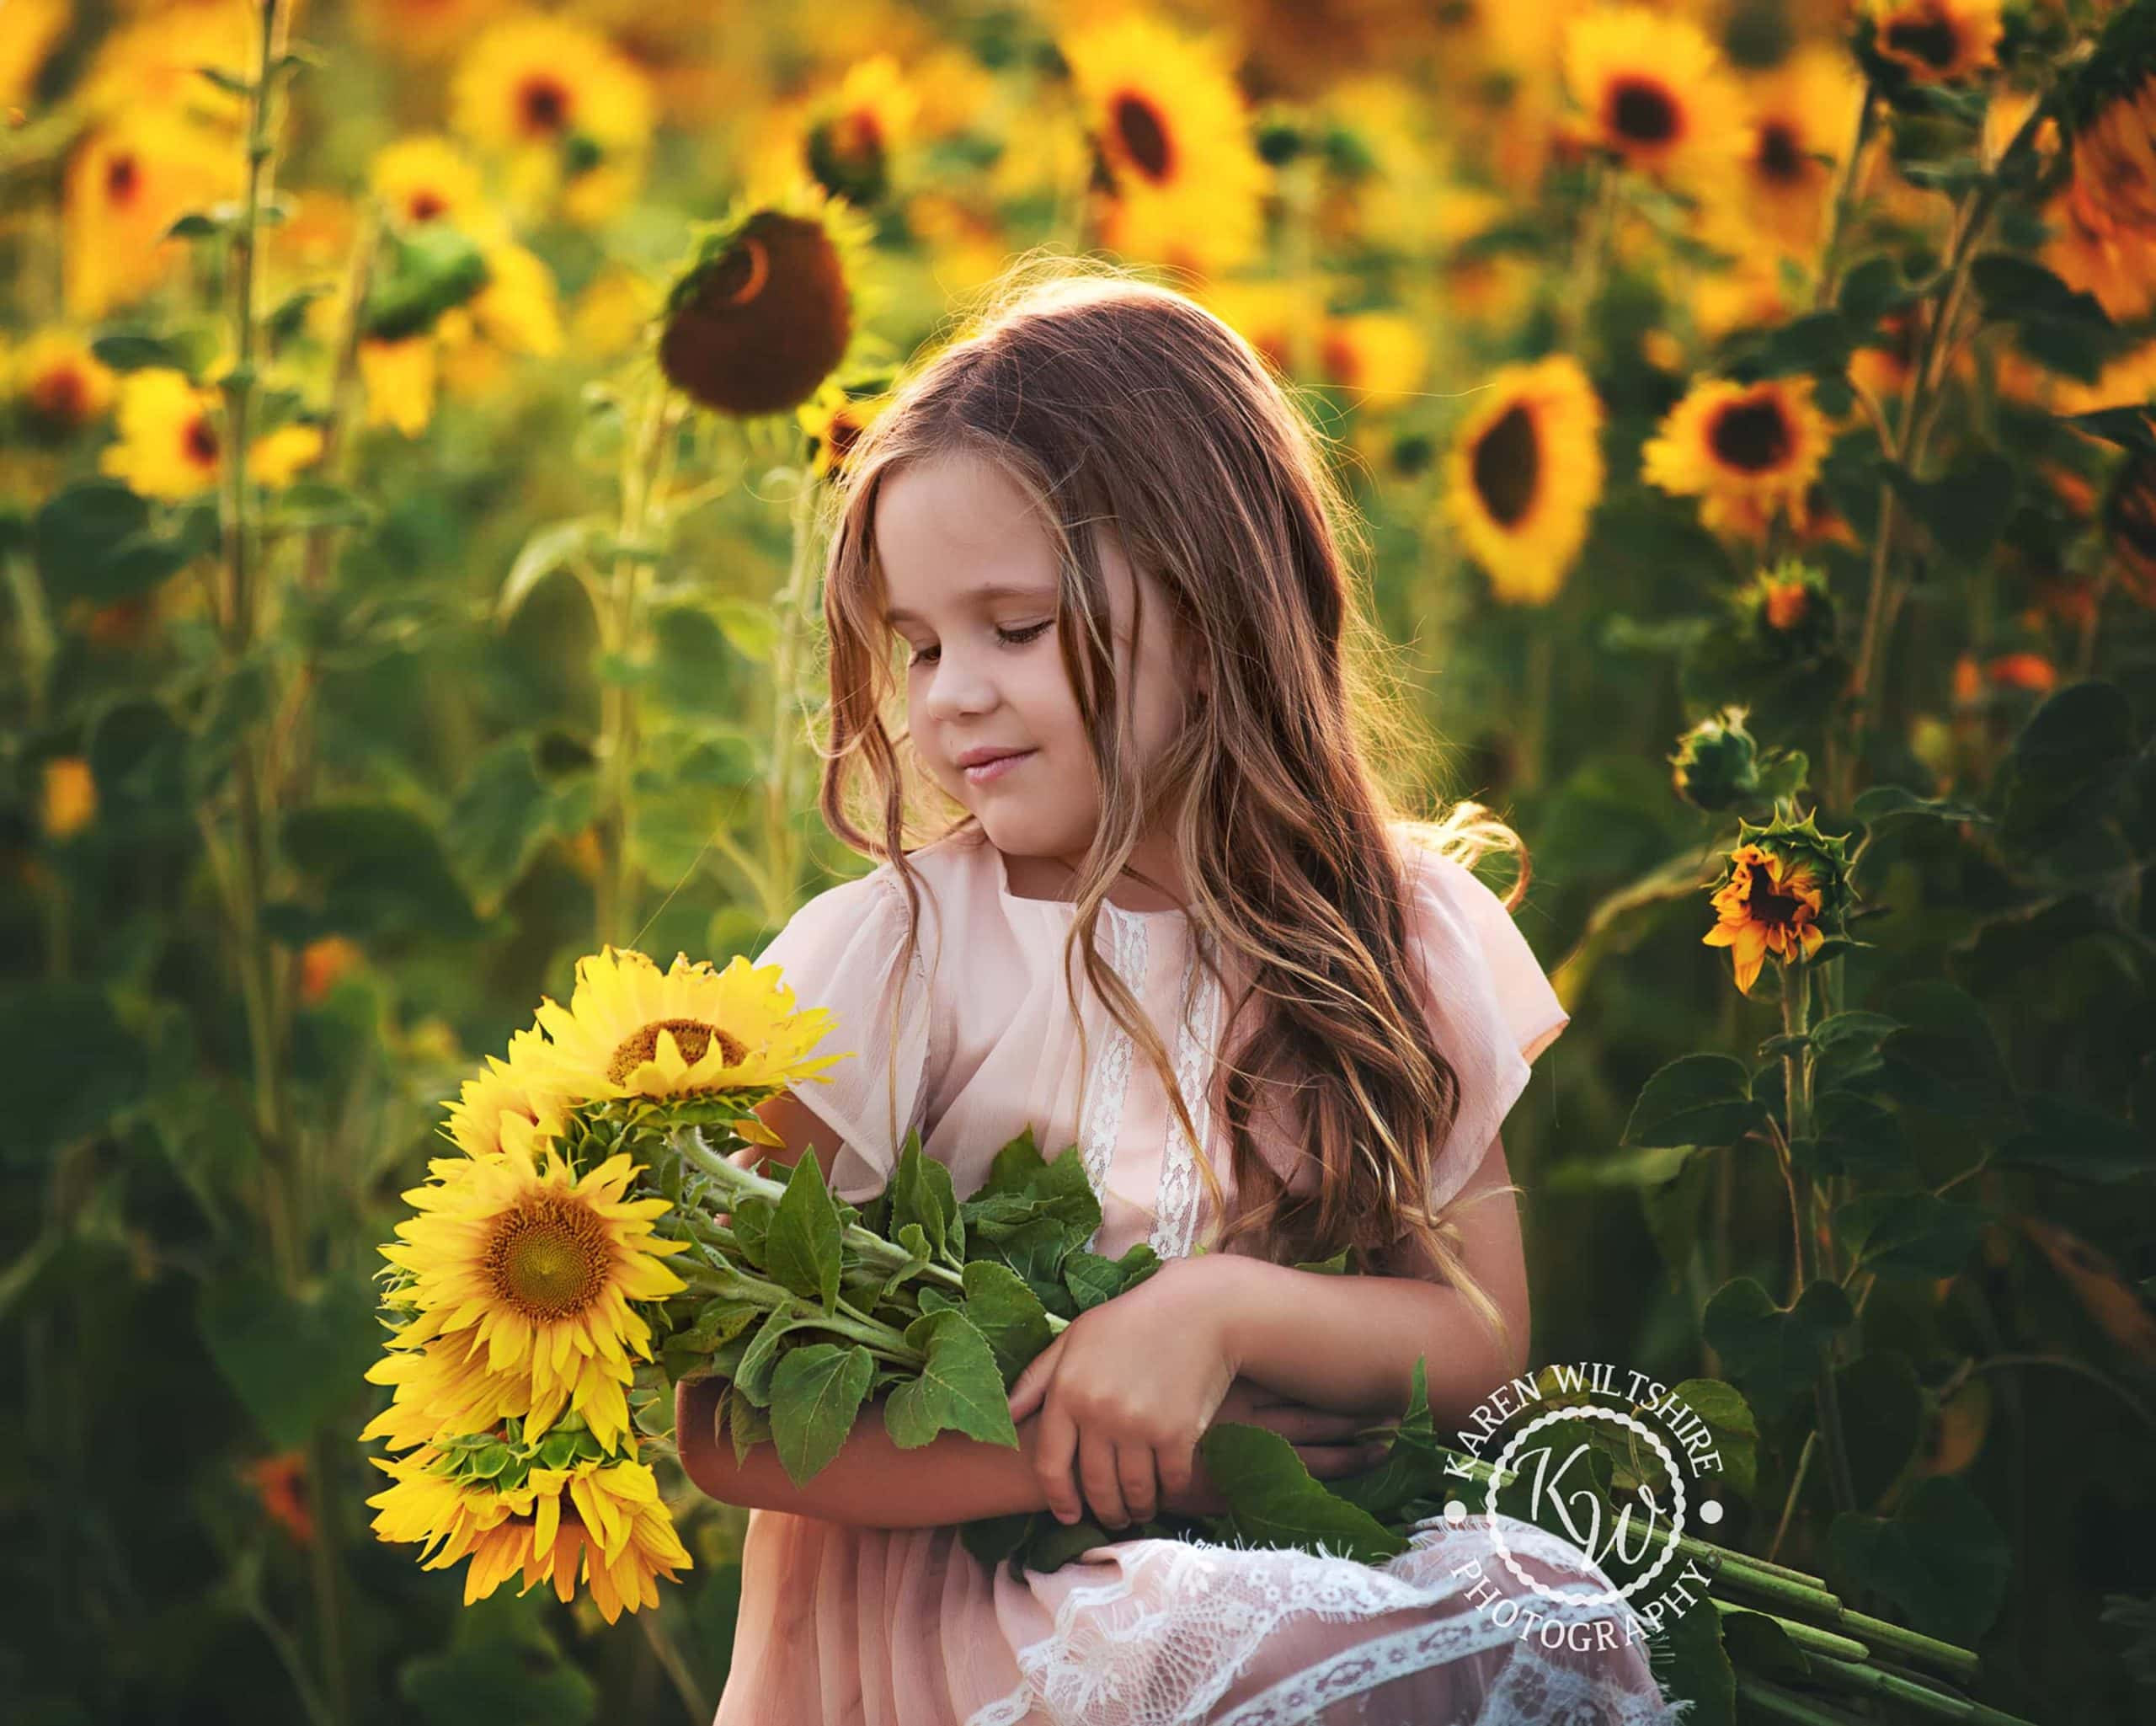 Young girl holding a large bunch of sunflowers